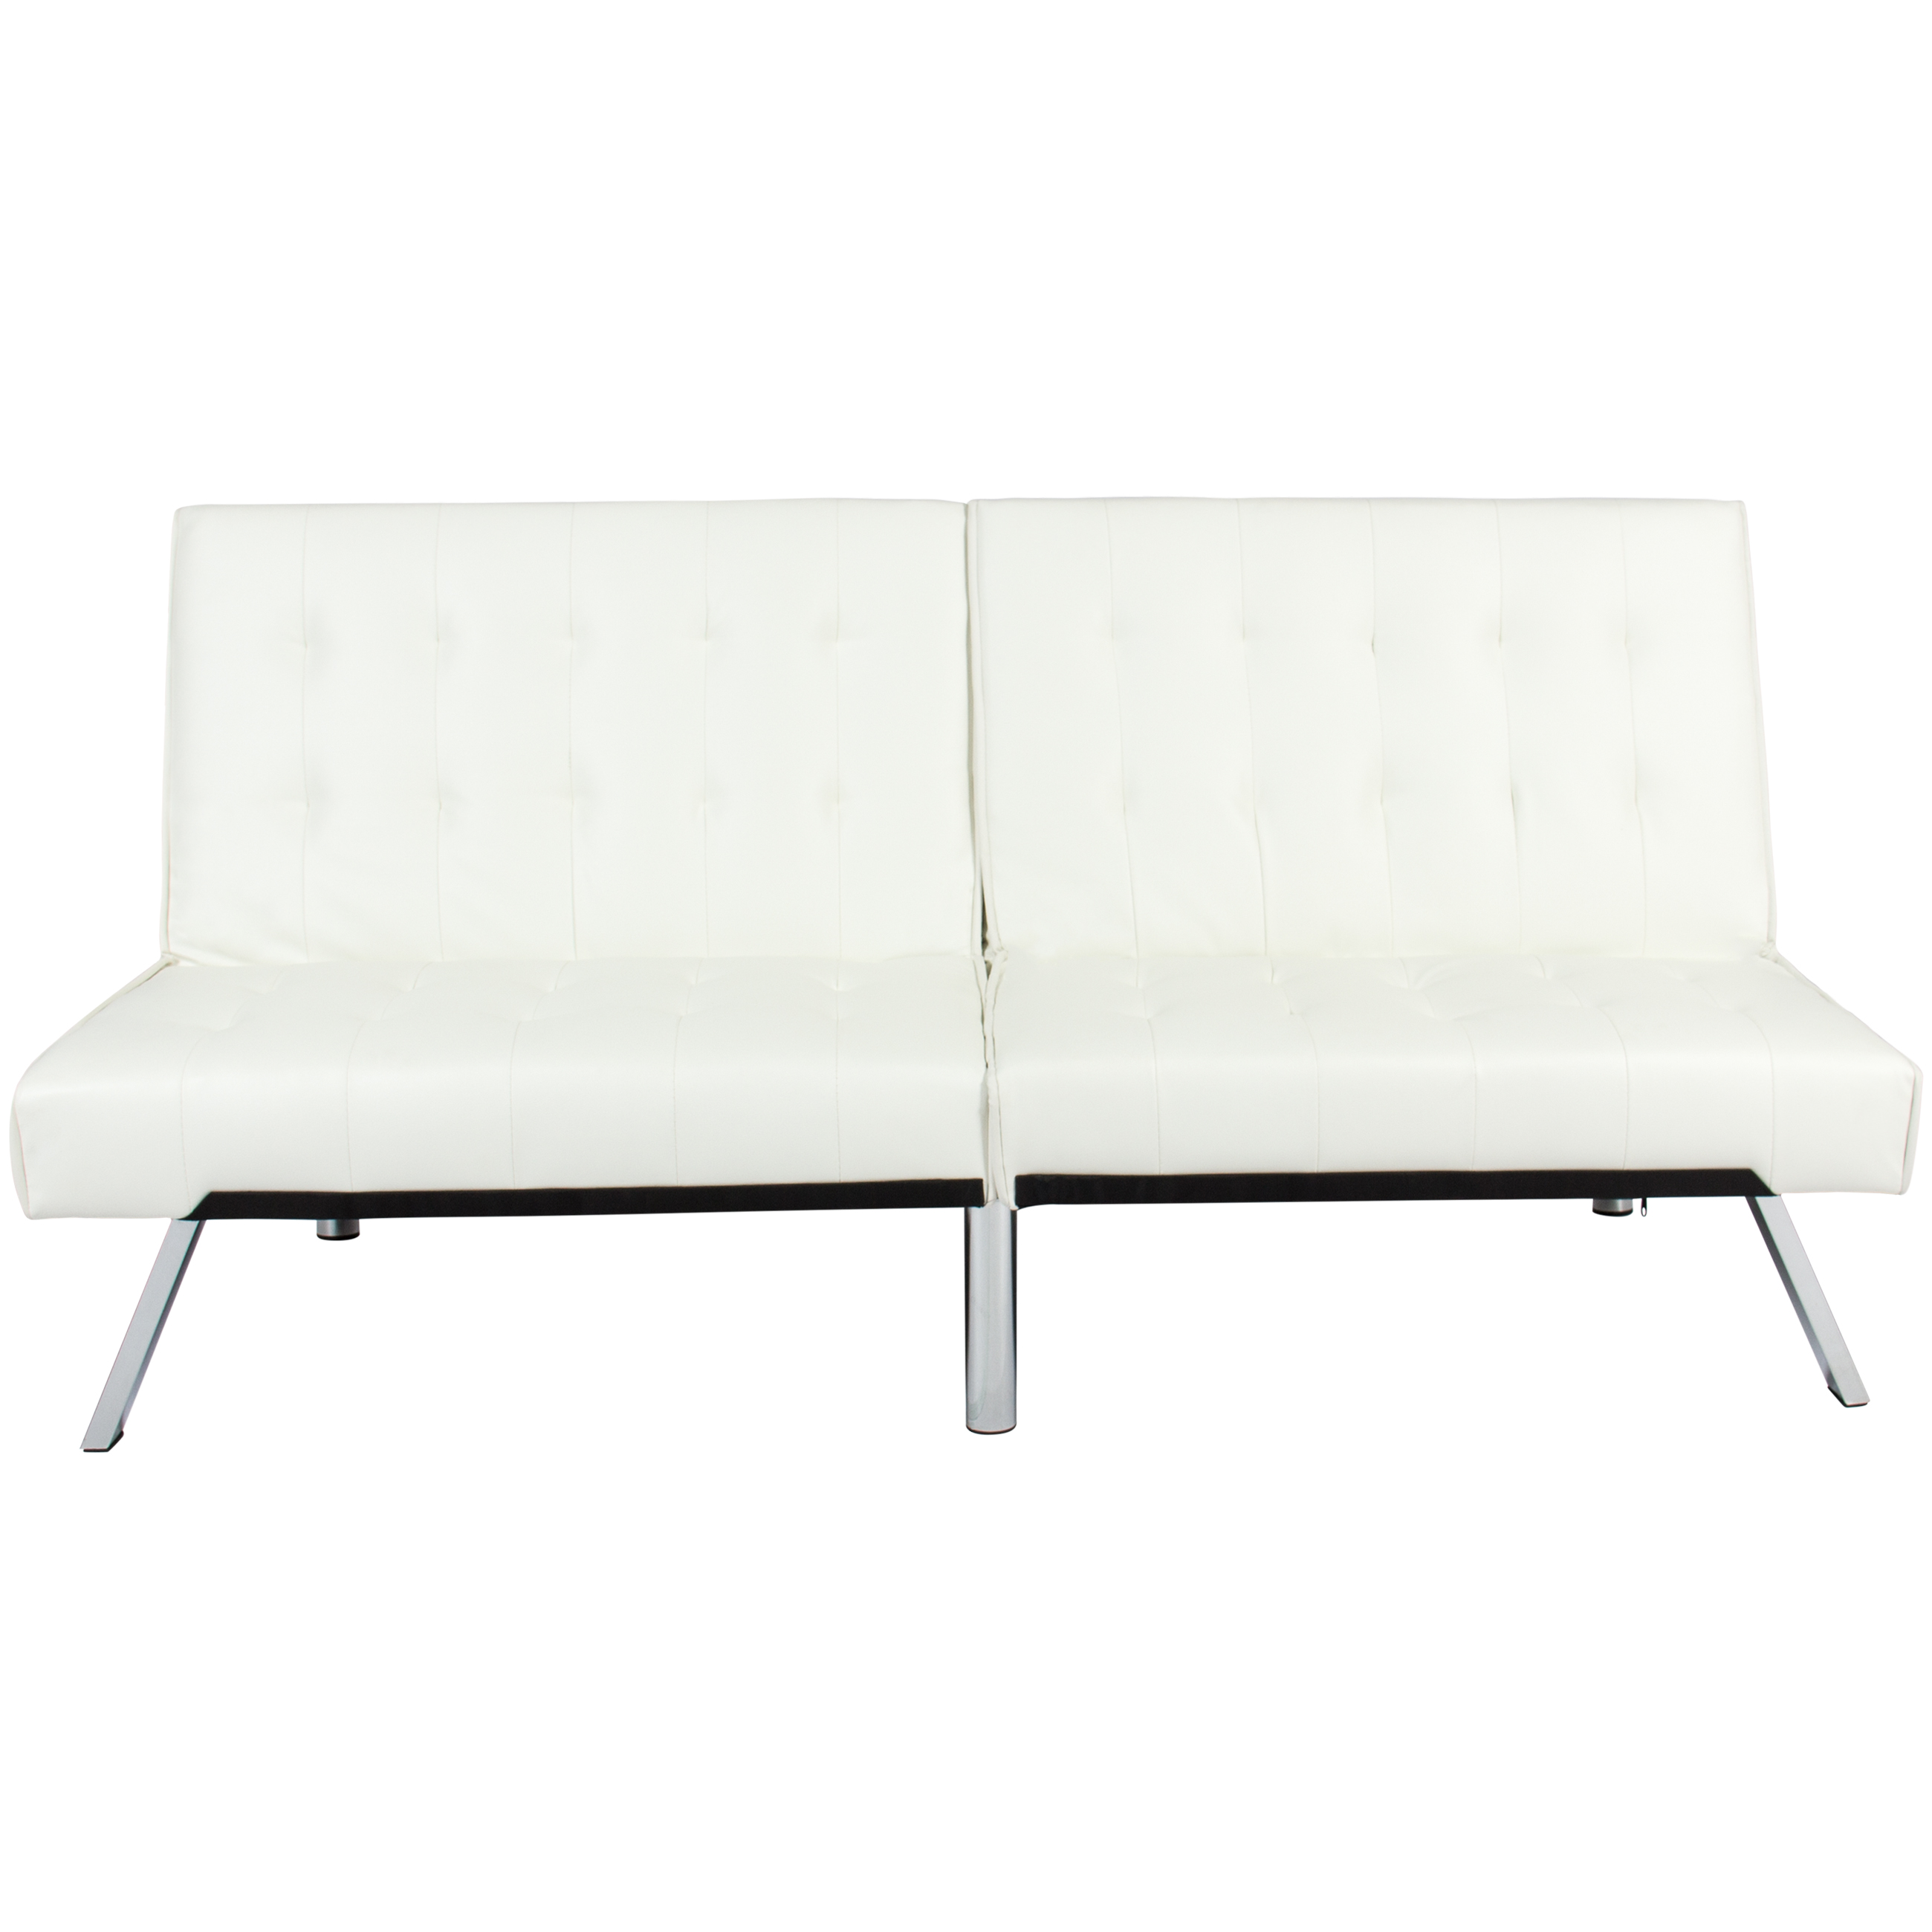 Best Choice Products Modern Leather Reclining Futon Sofa Bed Couch Lounger  Sleeper Furniture w/ Chrome Legs - White